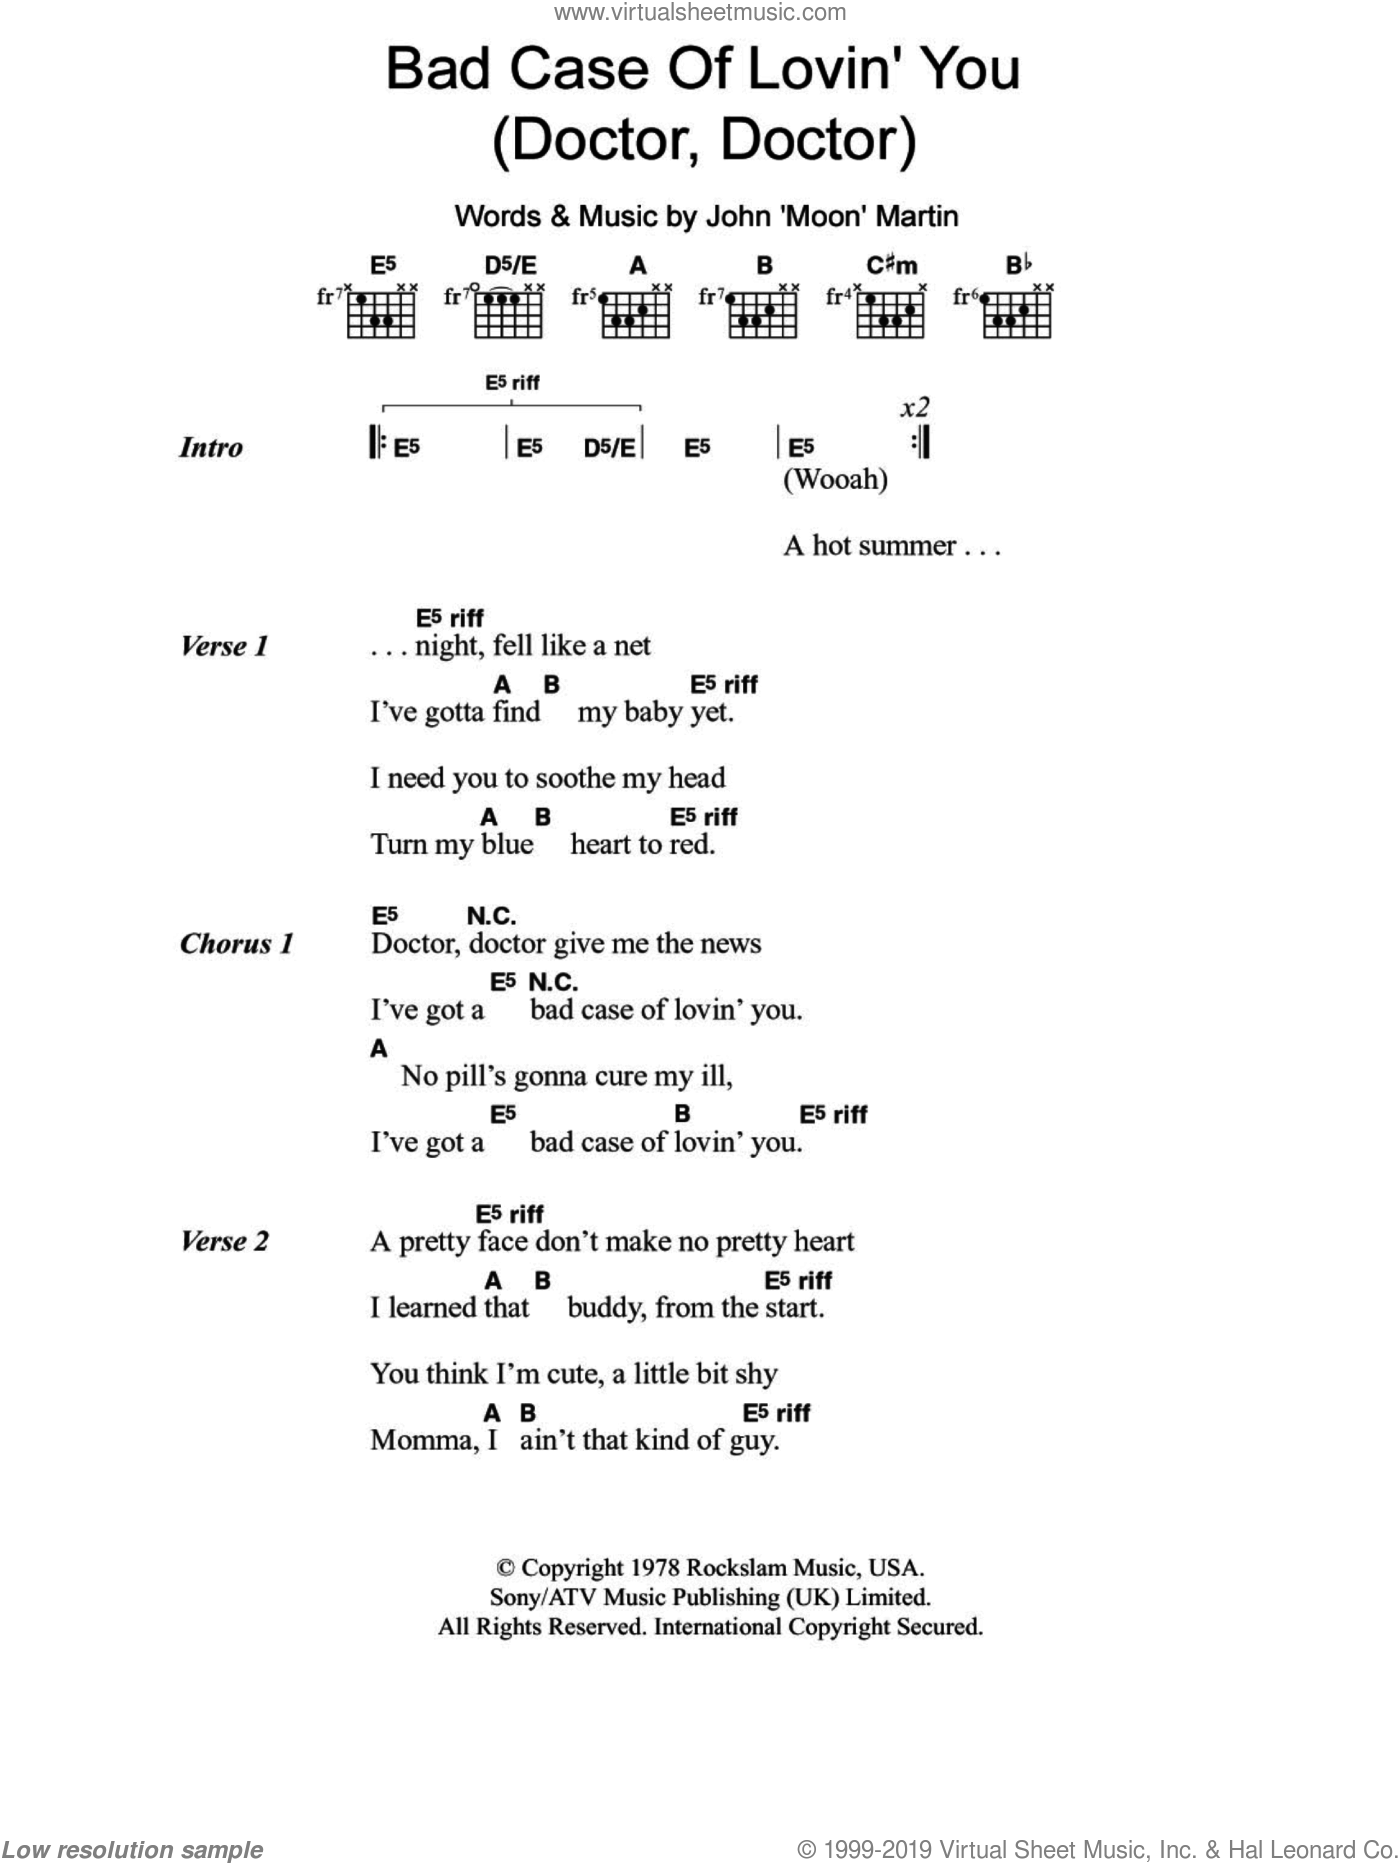 Bad Case Of Lovin' You (Doctor, Doctor) sheet music for guitar (chords) by Robert Palmer and John Moon Martin, intermediate skill level